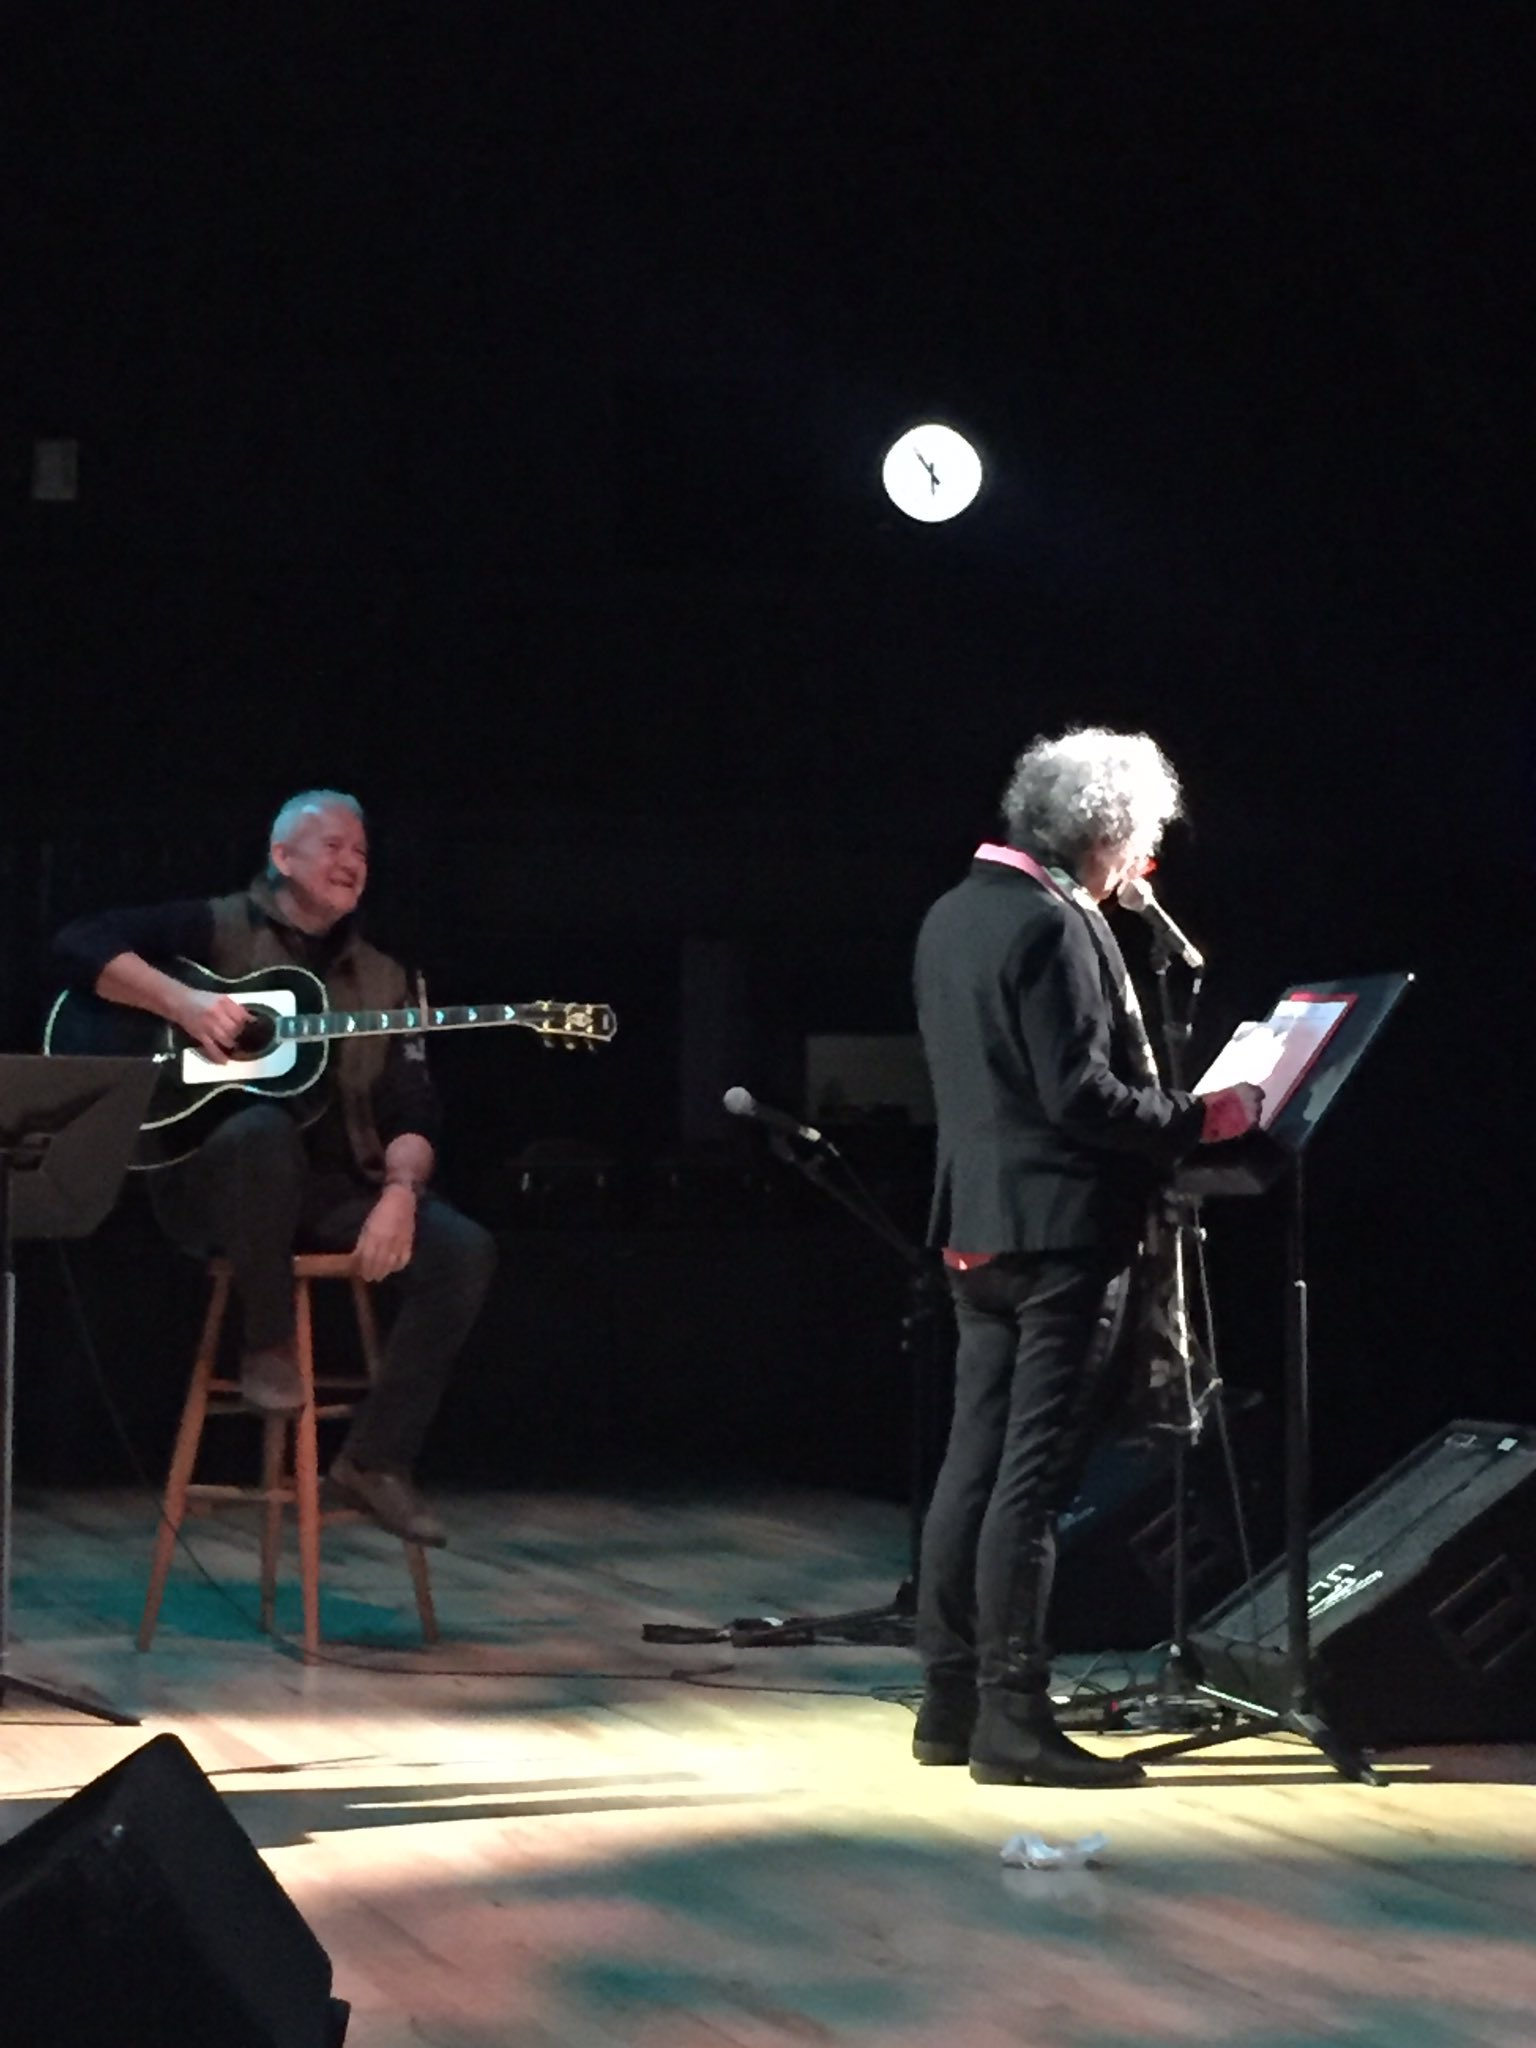 Margaret Atwood takes the stage during soundcheck with Murray McLauchlan accompanying her on guitar. #VoicesThatCare https://t.co/1BLGbiO6uo